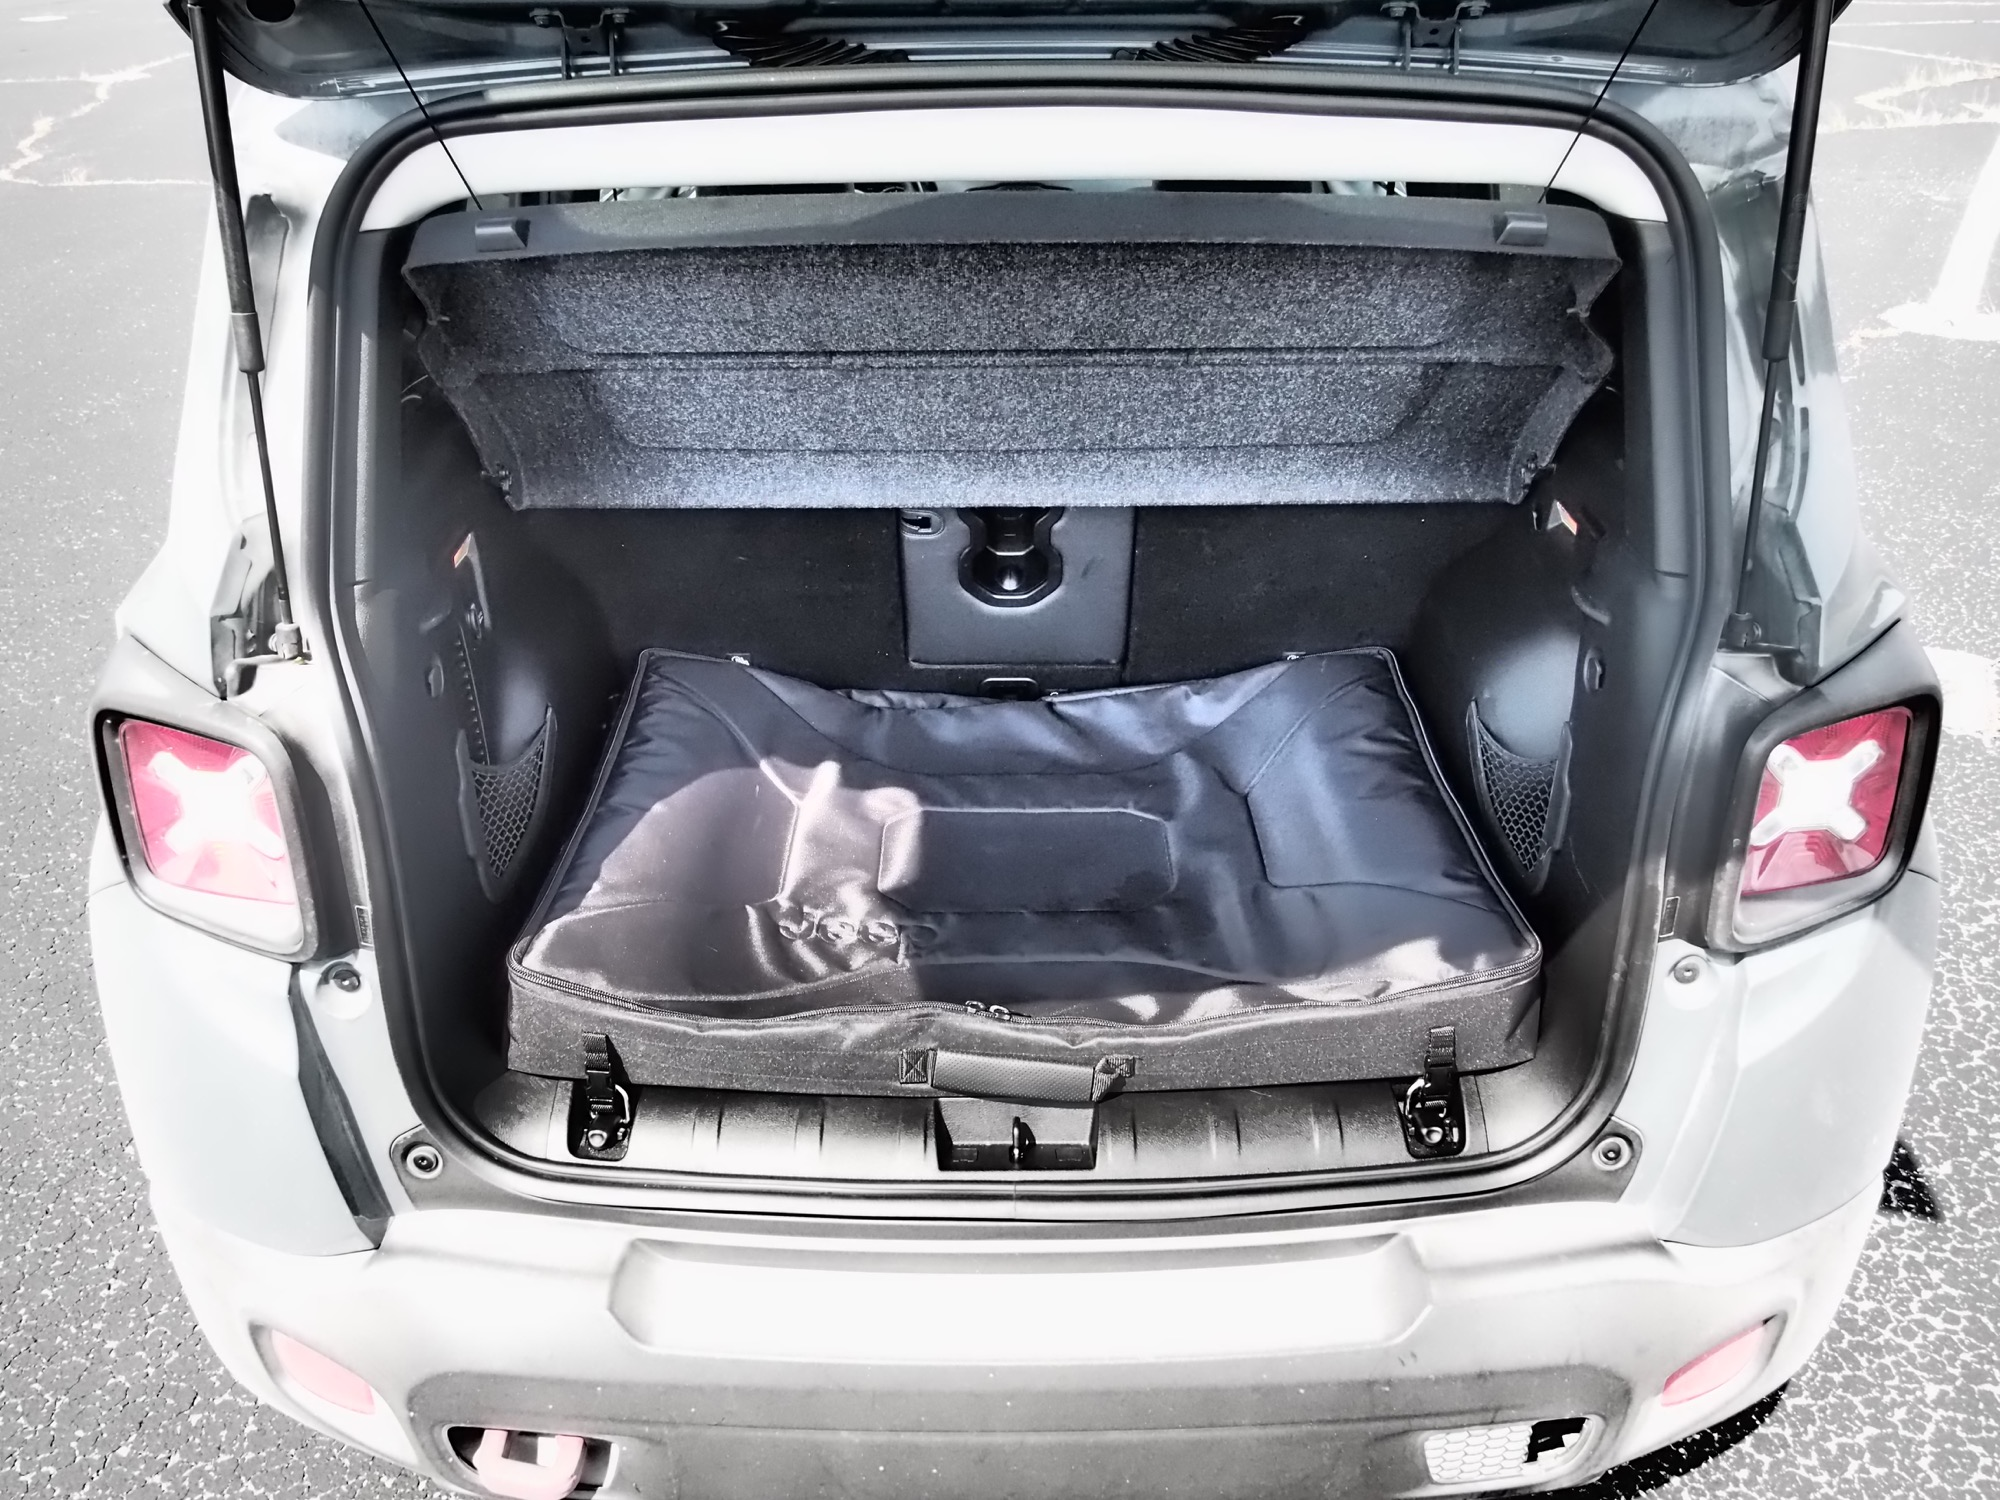 Jeep Renegade Interior on Nissan Cube Rear Seat